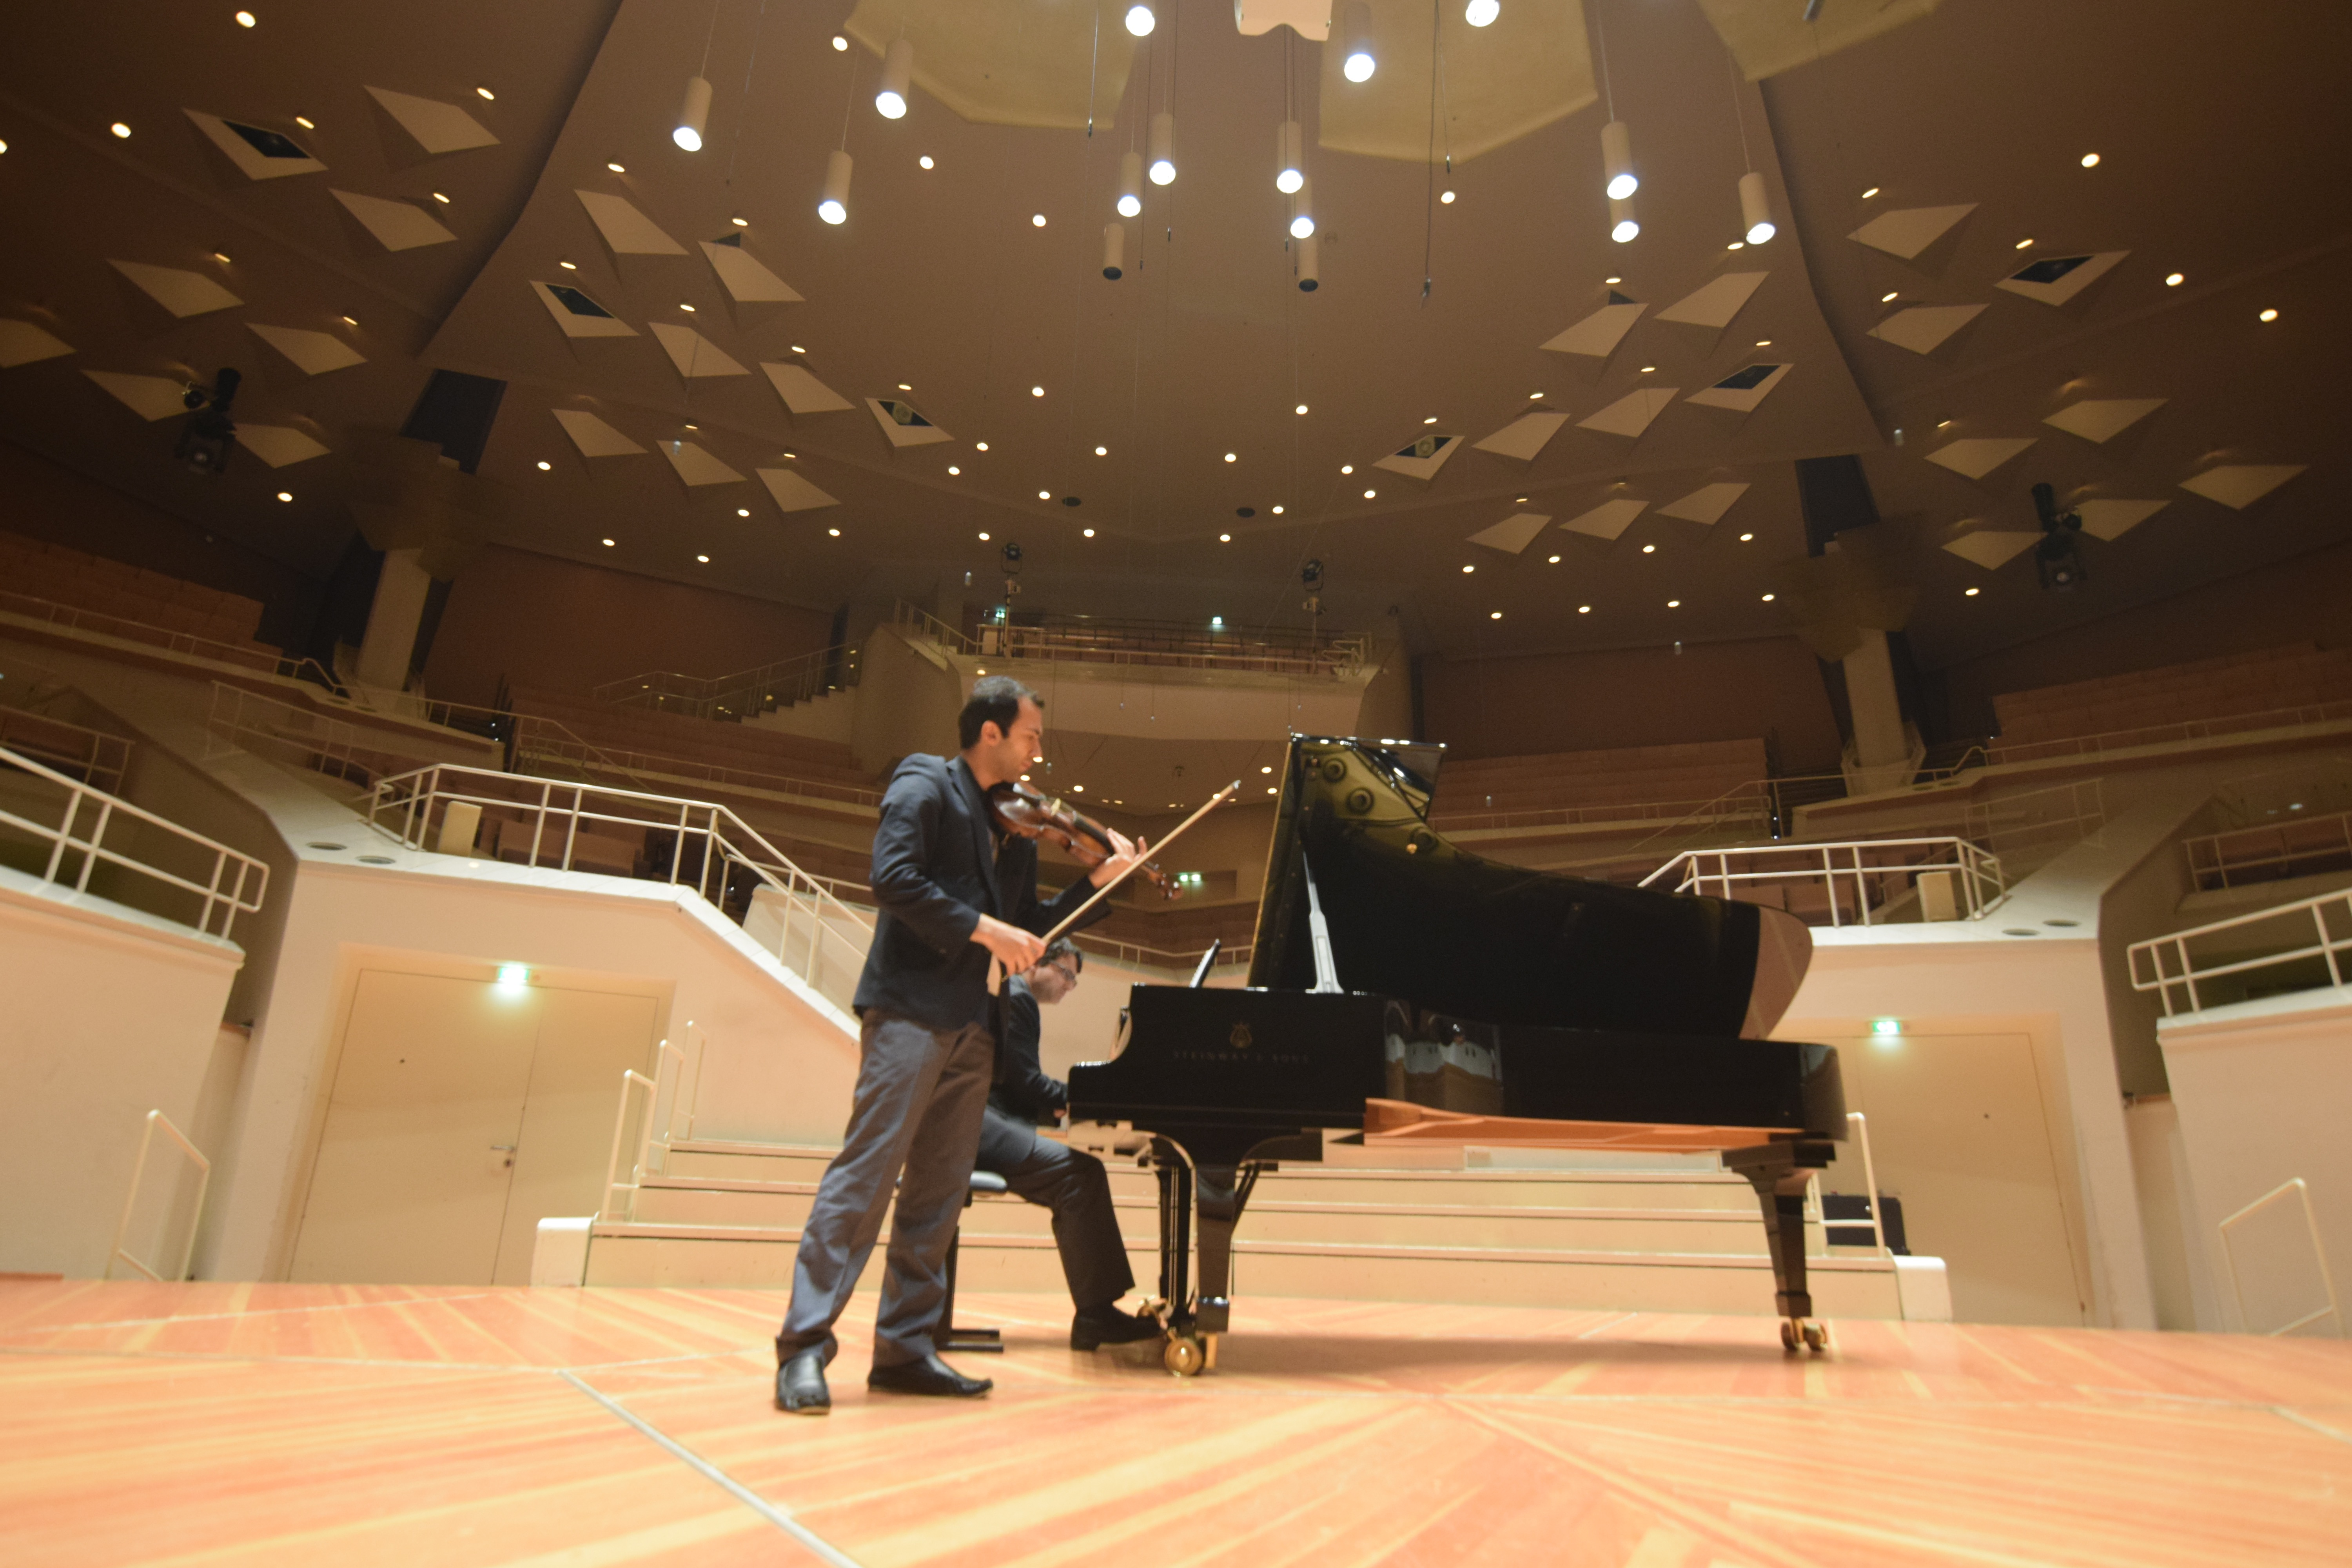 berliner music competition 80